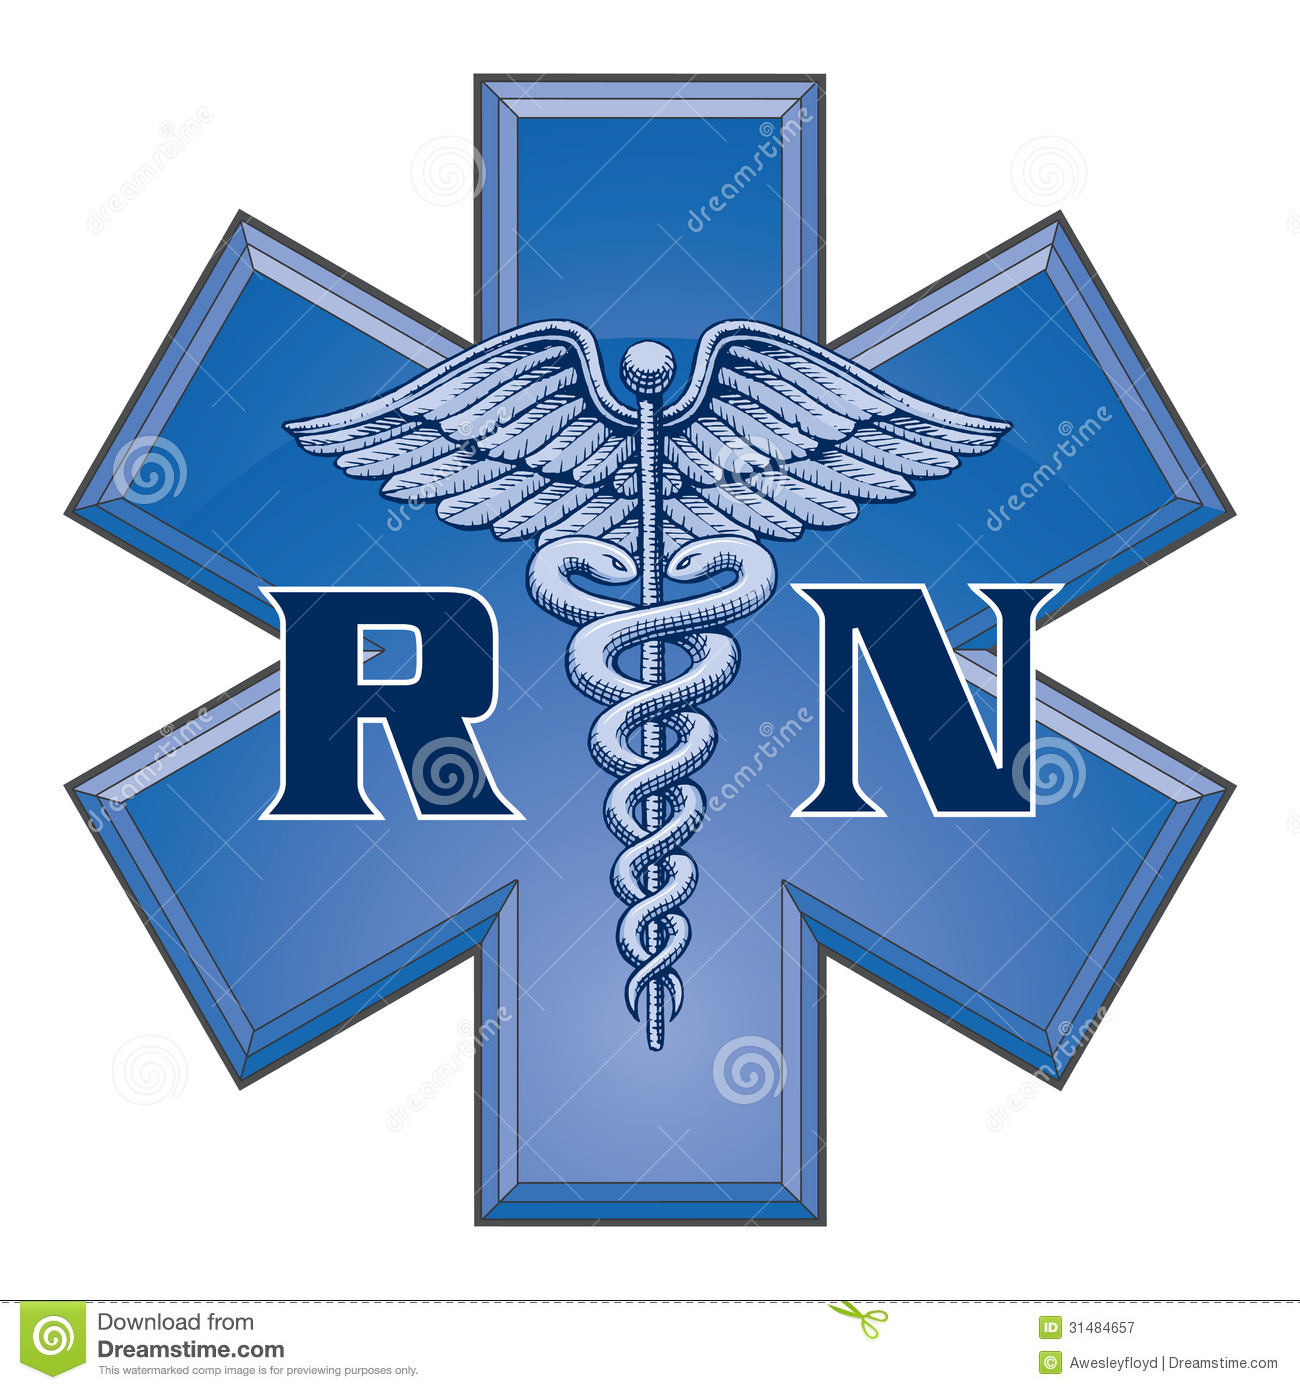 Registered nurse star of life medical symbol stock vector royalty free stock photo buycottarizona Image collections